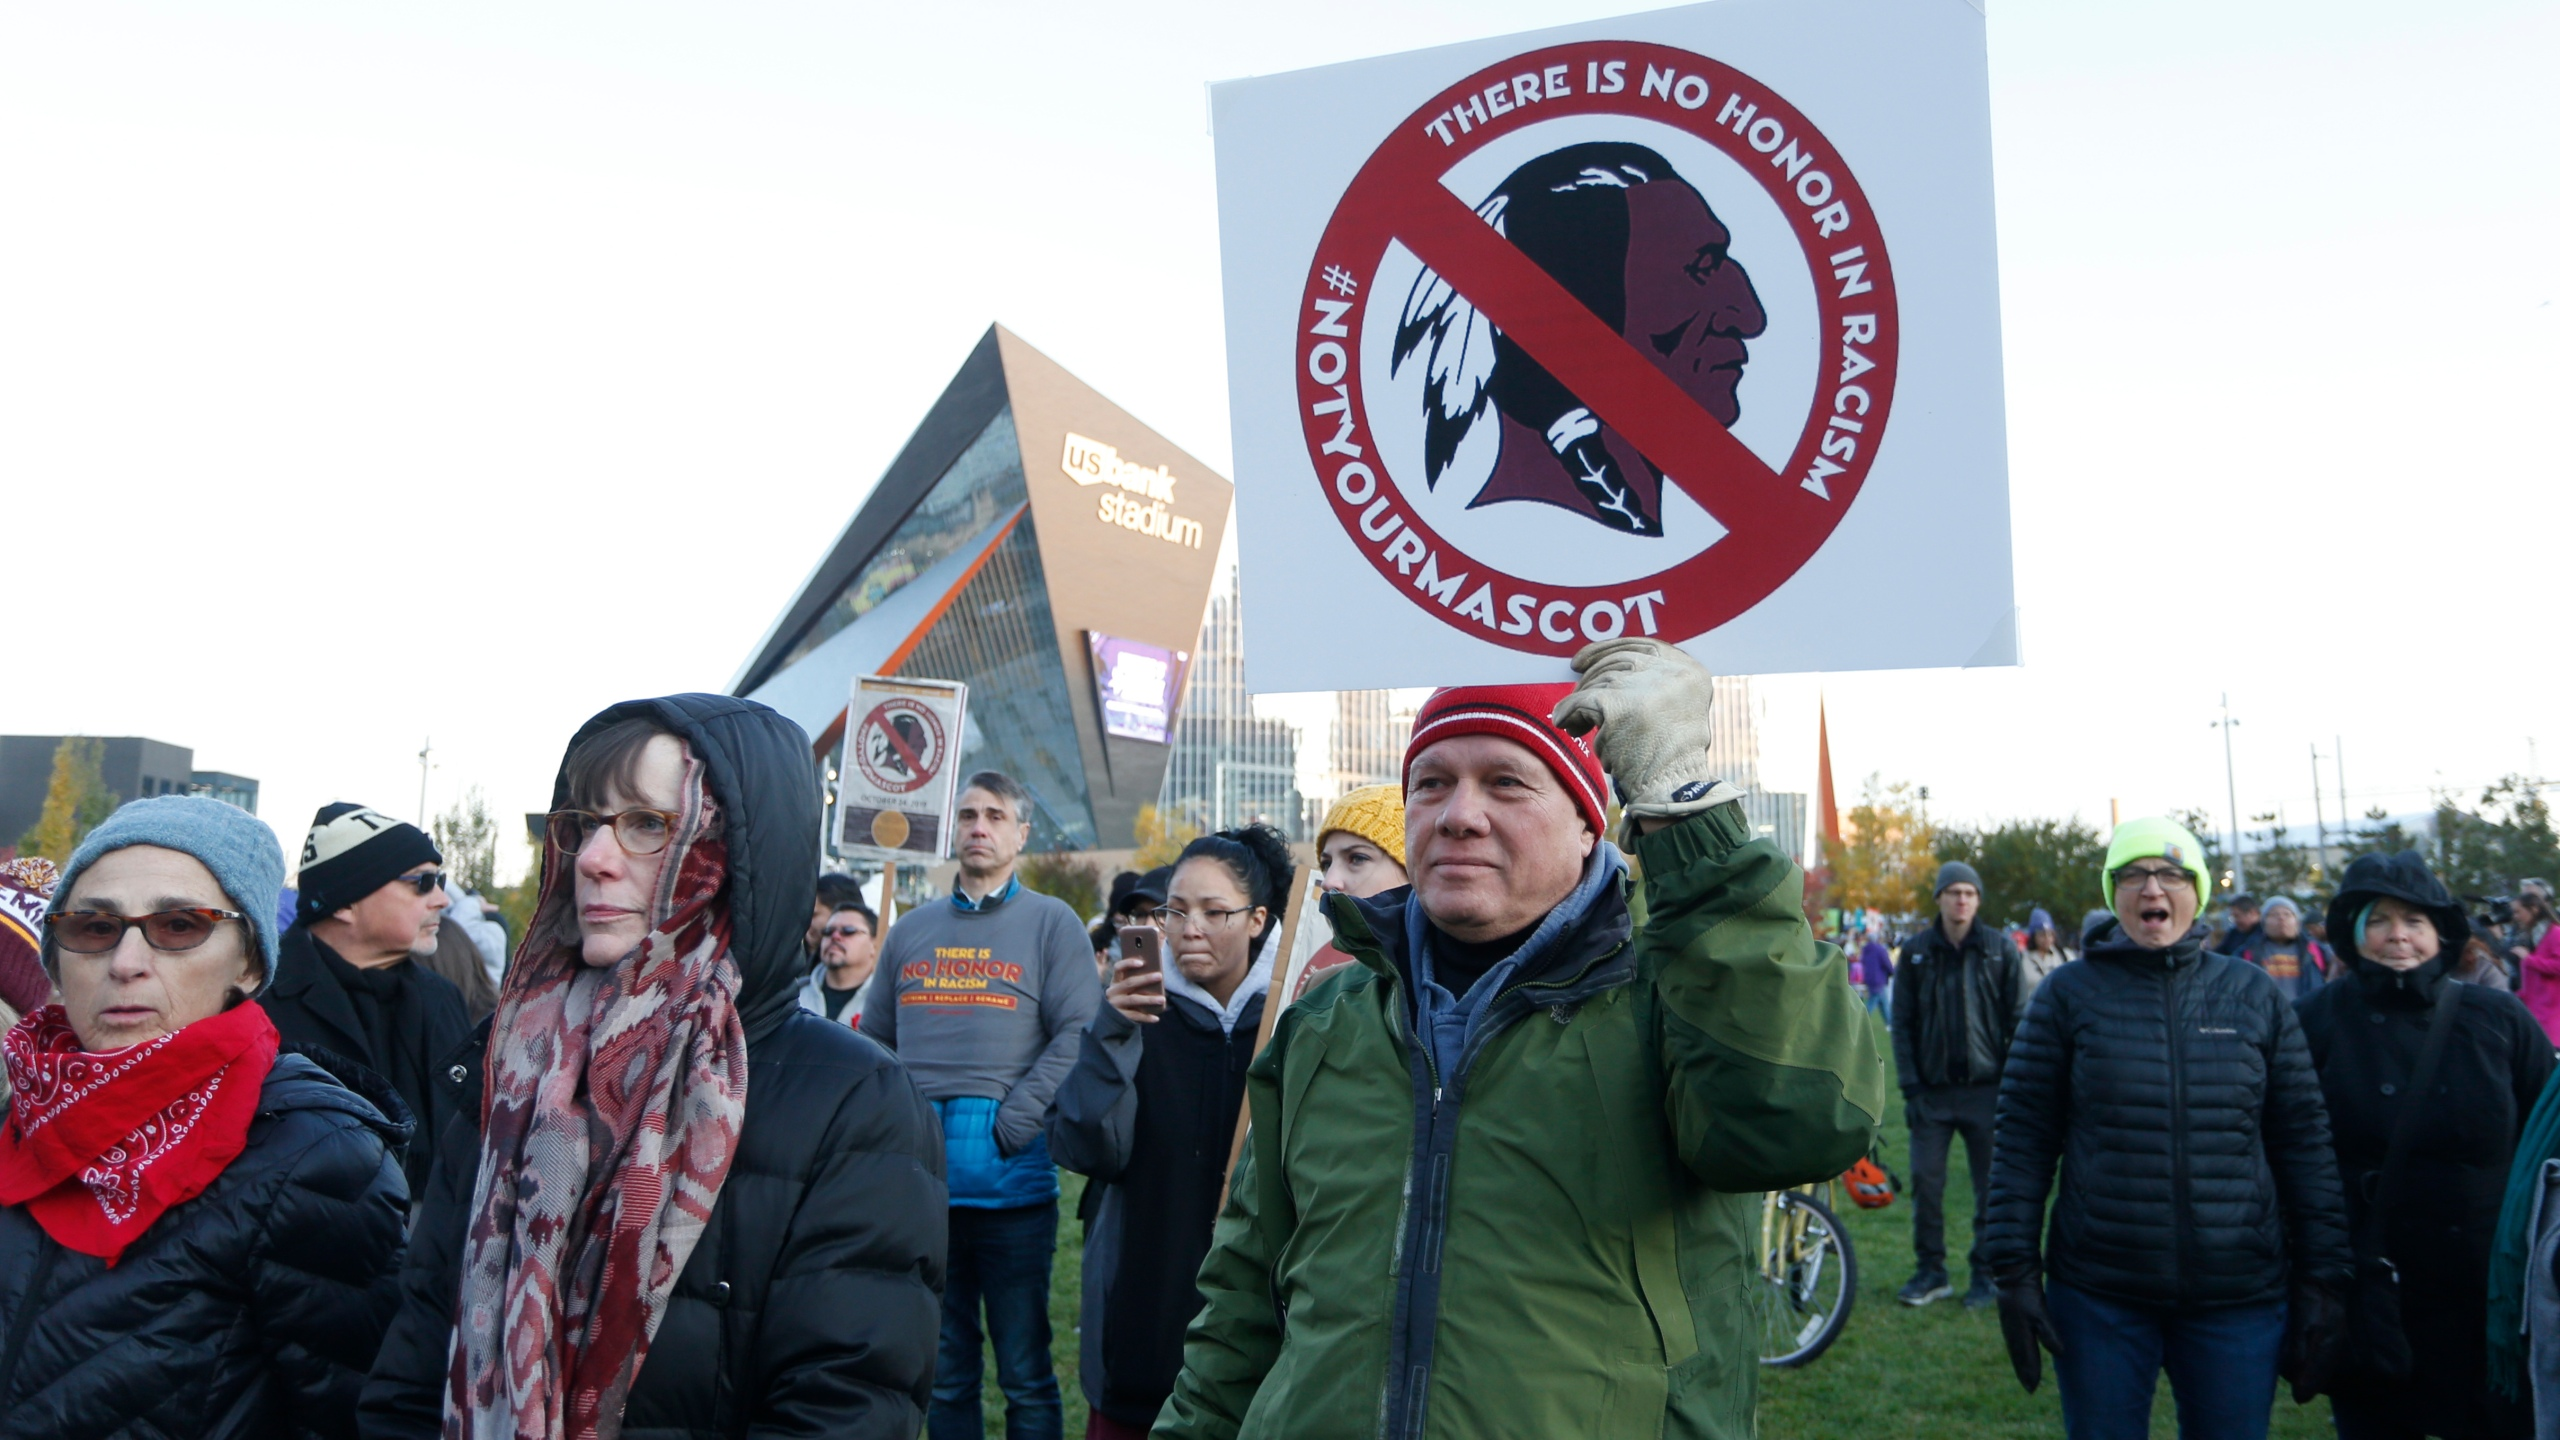 In this Oct. 24, 2019, file photo, Native American leaders protest against the Redskins team name outside U.S. Bank Stadium before an NFL football game between the Minnesota Vikings and the Washington Redskins in Minneapolis. (Bruce Kluckhohn/Associated Press)